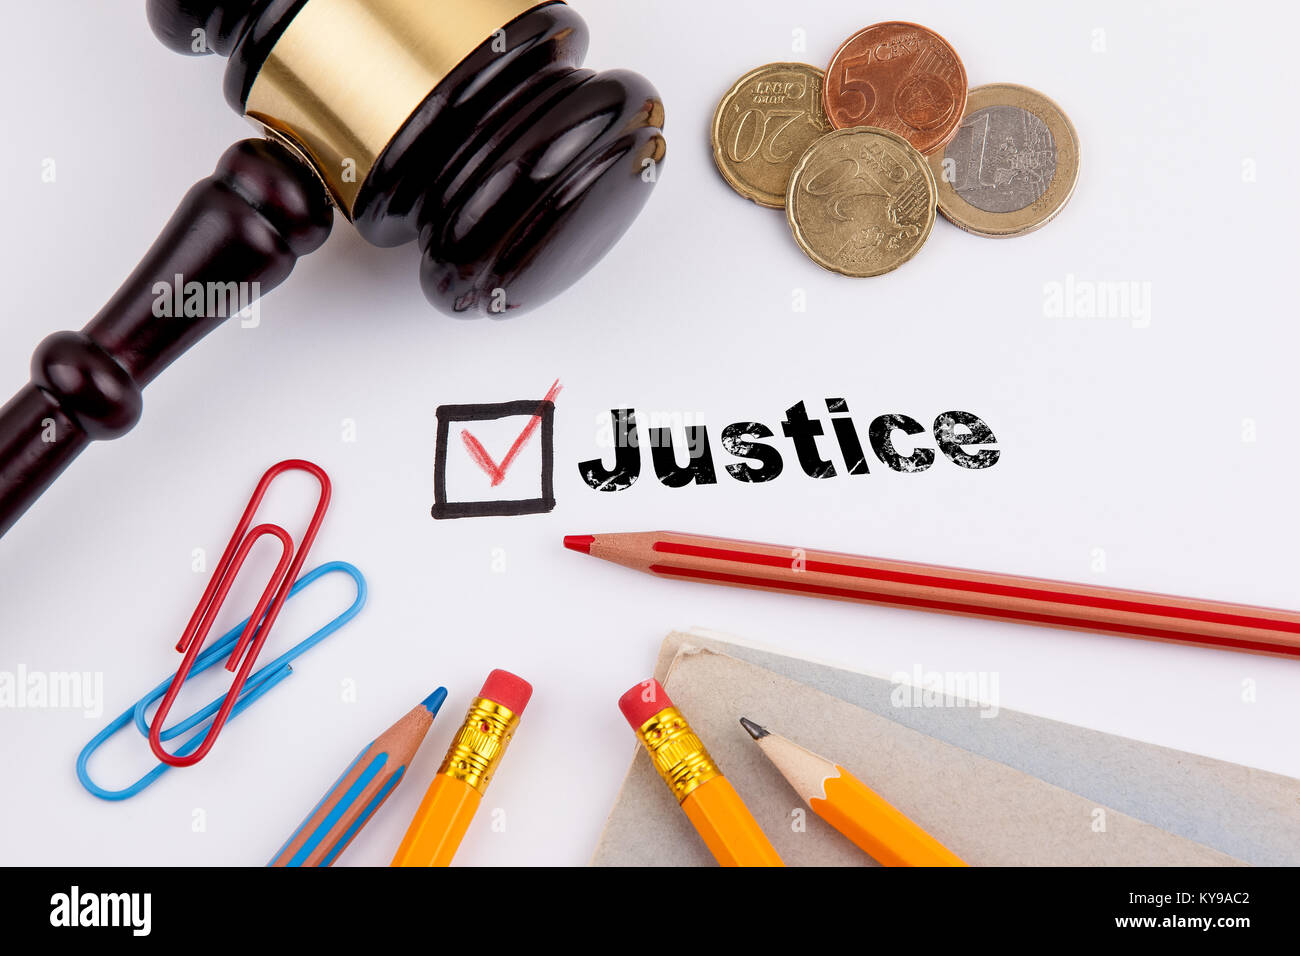 Justice. Questionnaire with red cross on the white paper - Stock Image